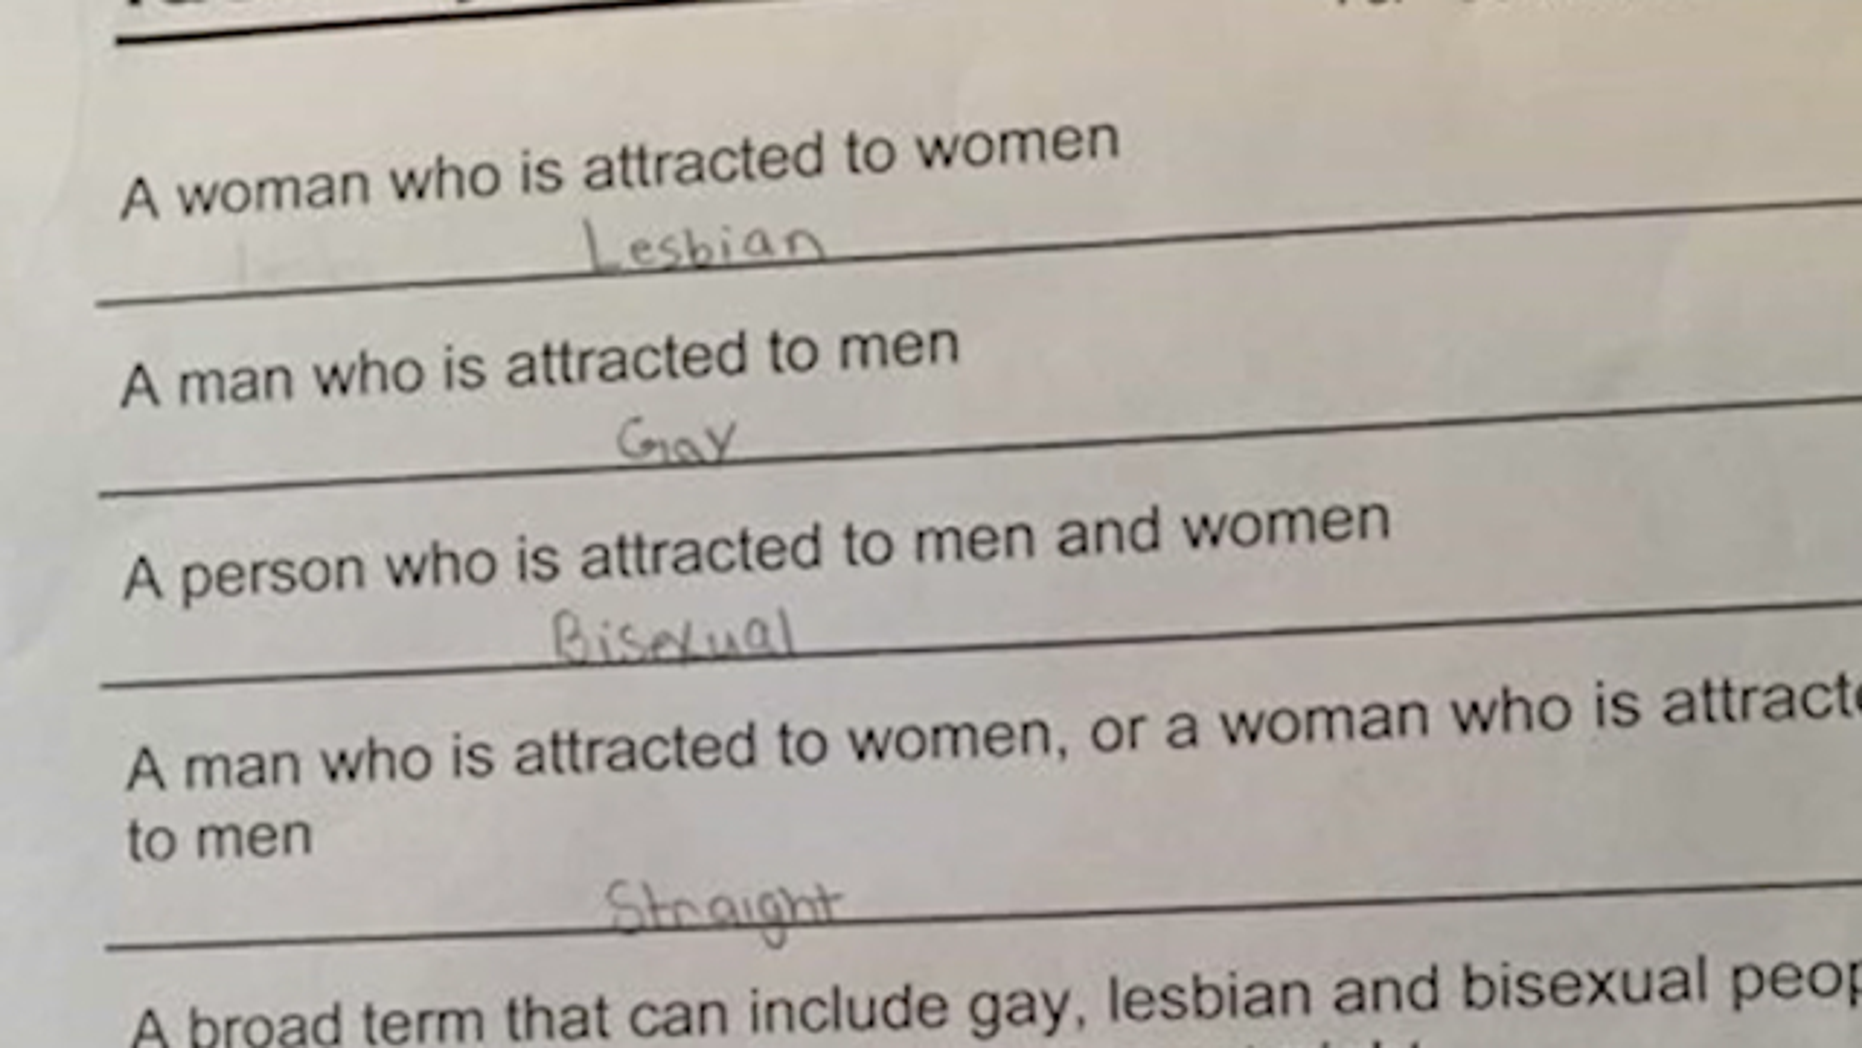 Definitions of all sexual orientations